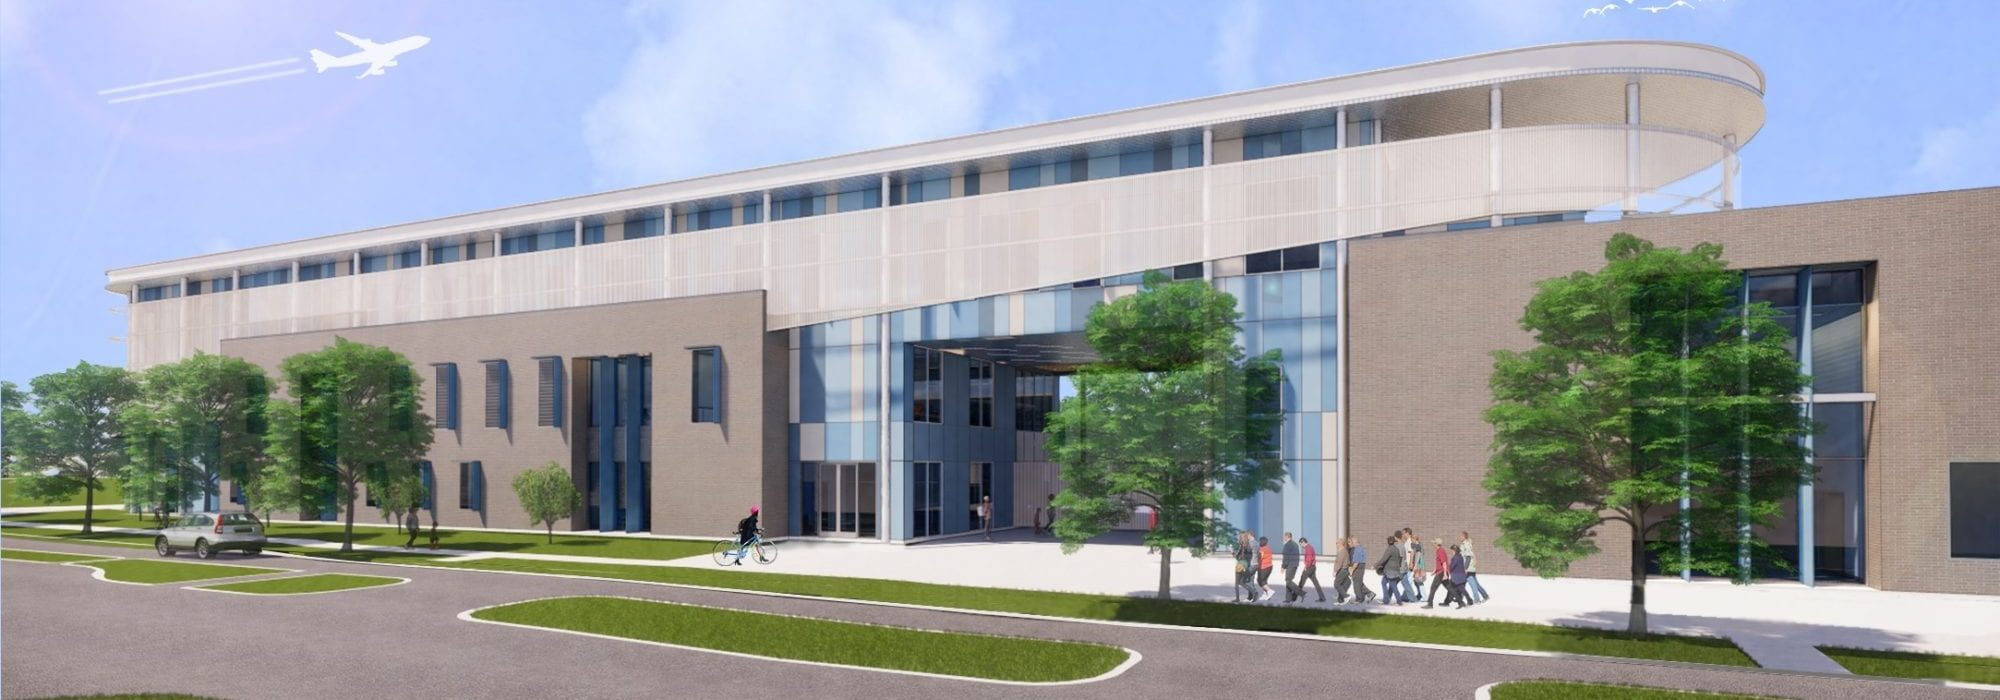 New Northeast Middle School Entrance Rendering